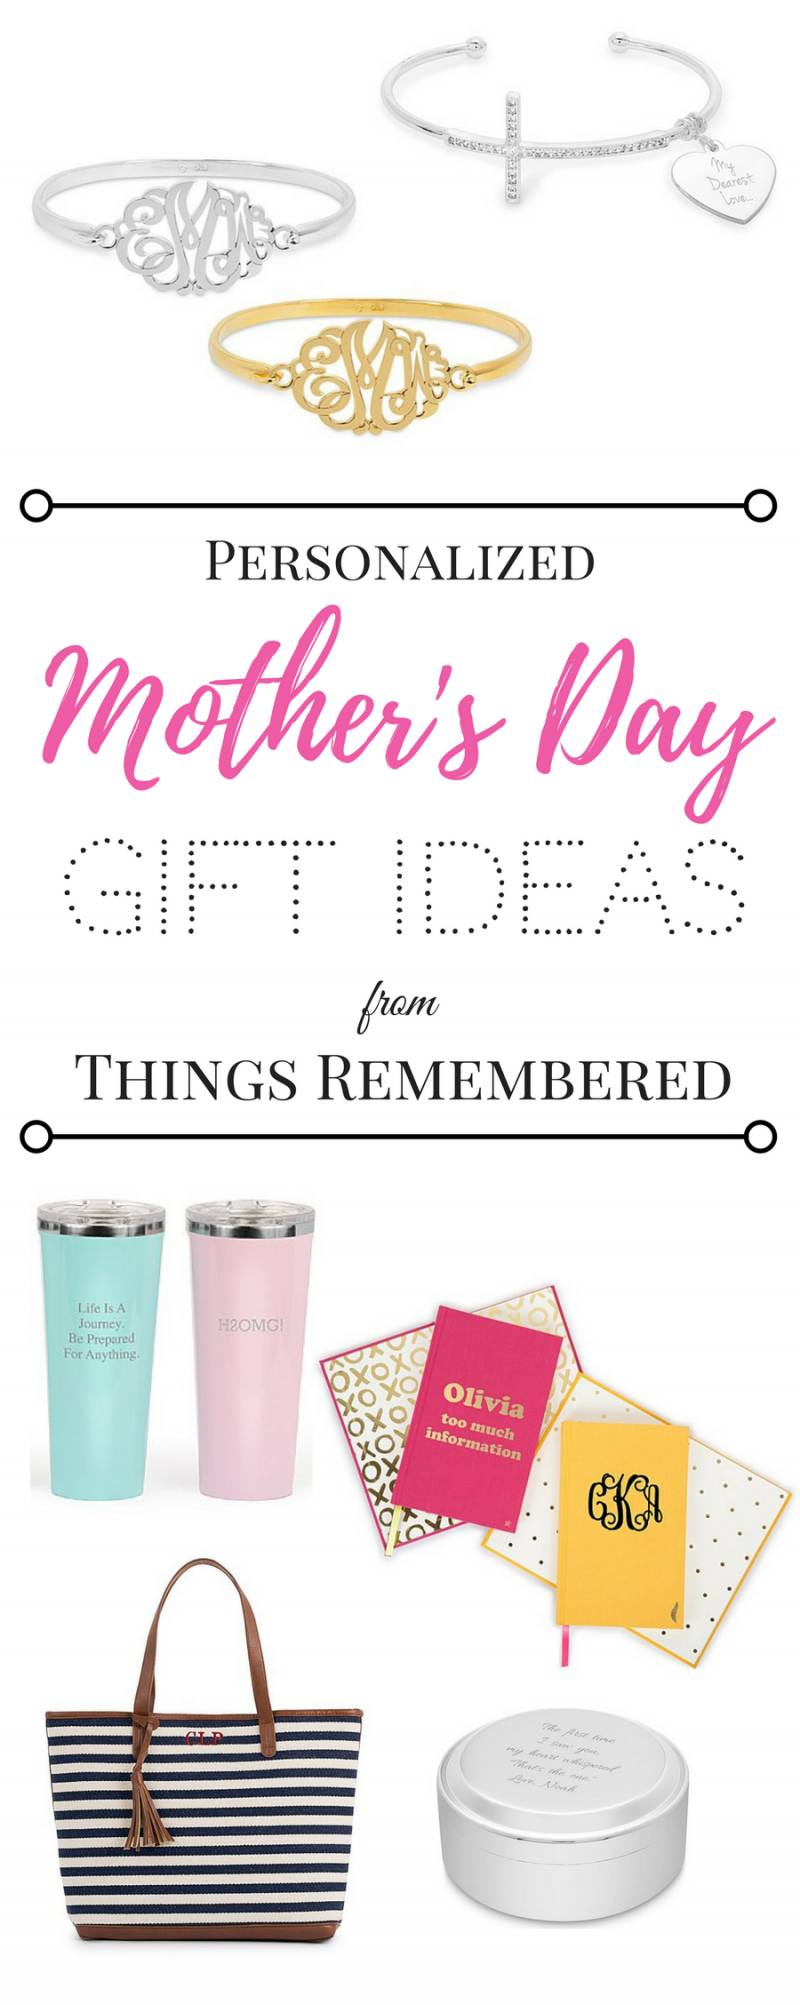 Personalized Mother's Day Gift Ideas from Things Remembered | Best